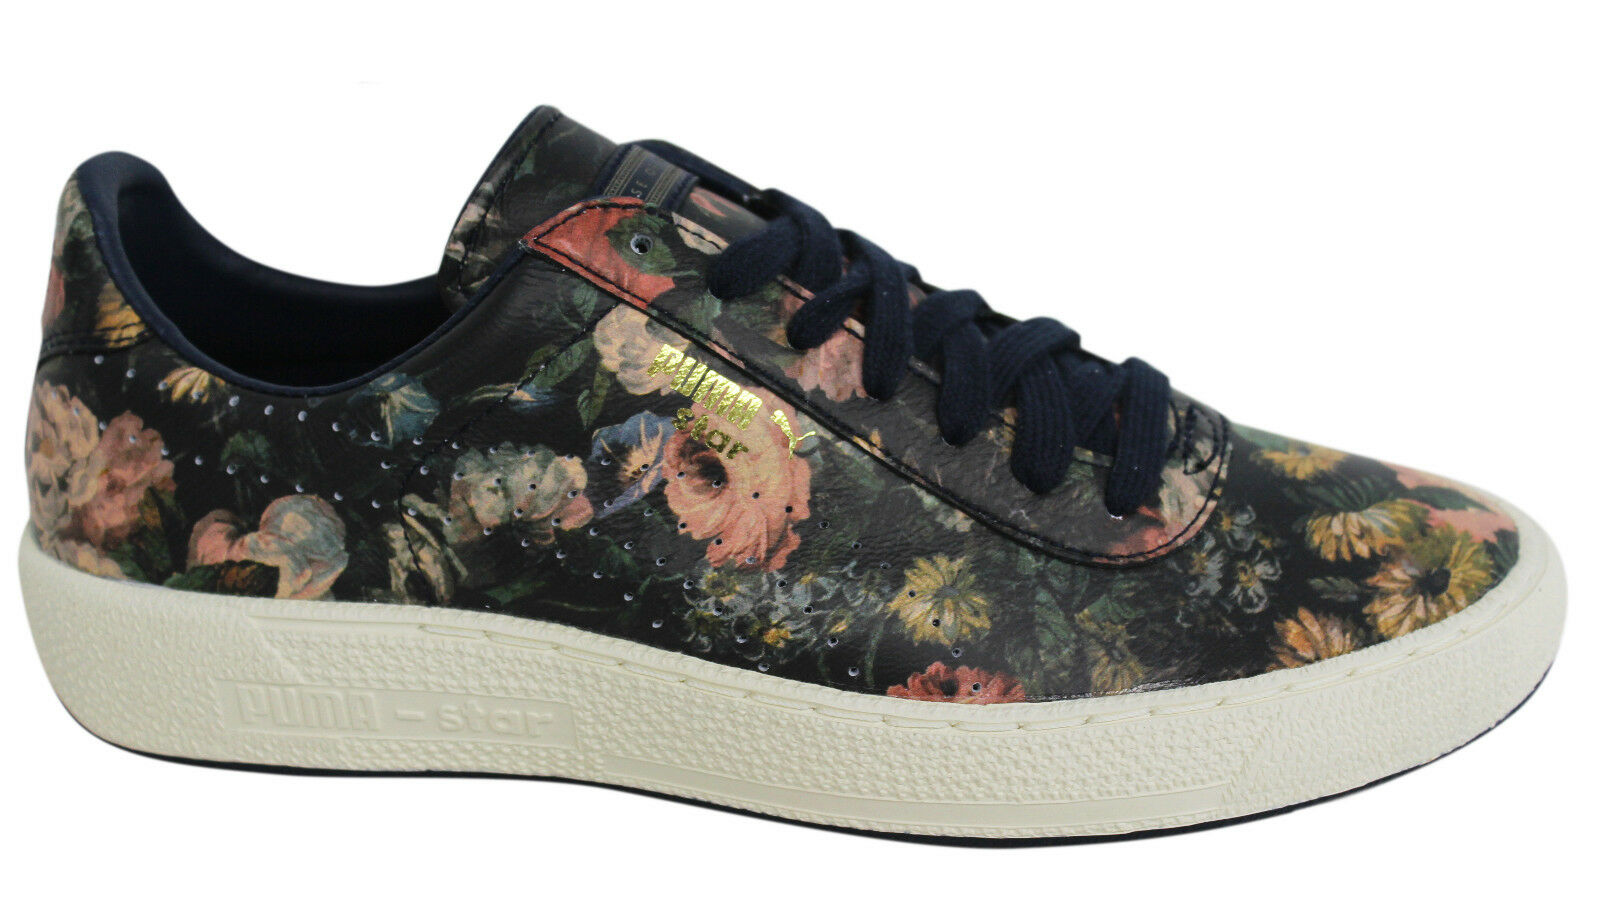 75ef4c52dd PUMA Star X House of Hackney HOH Uomo Lace Up Leder Trainers 358466 01 M9